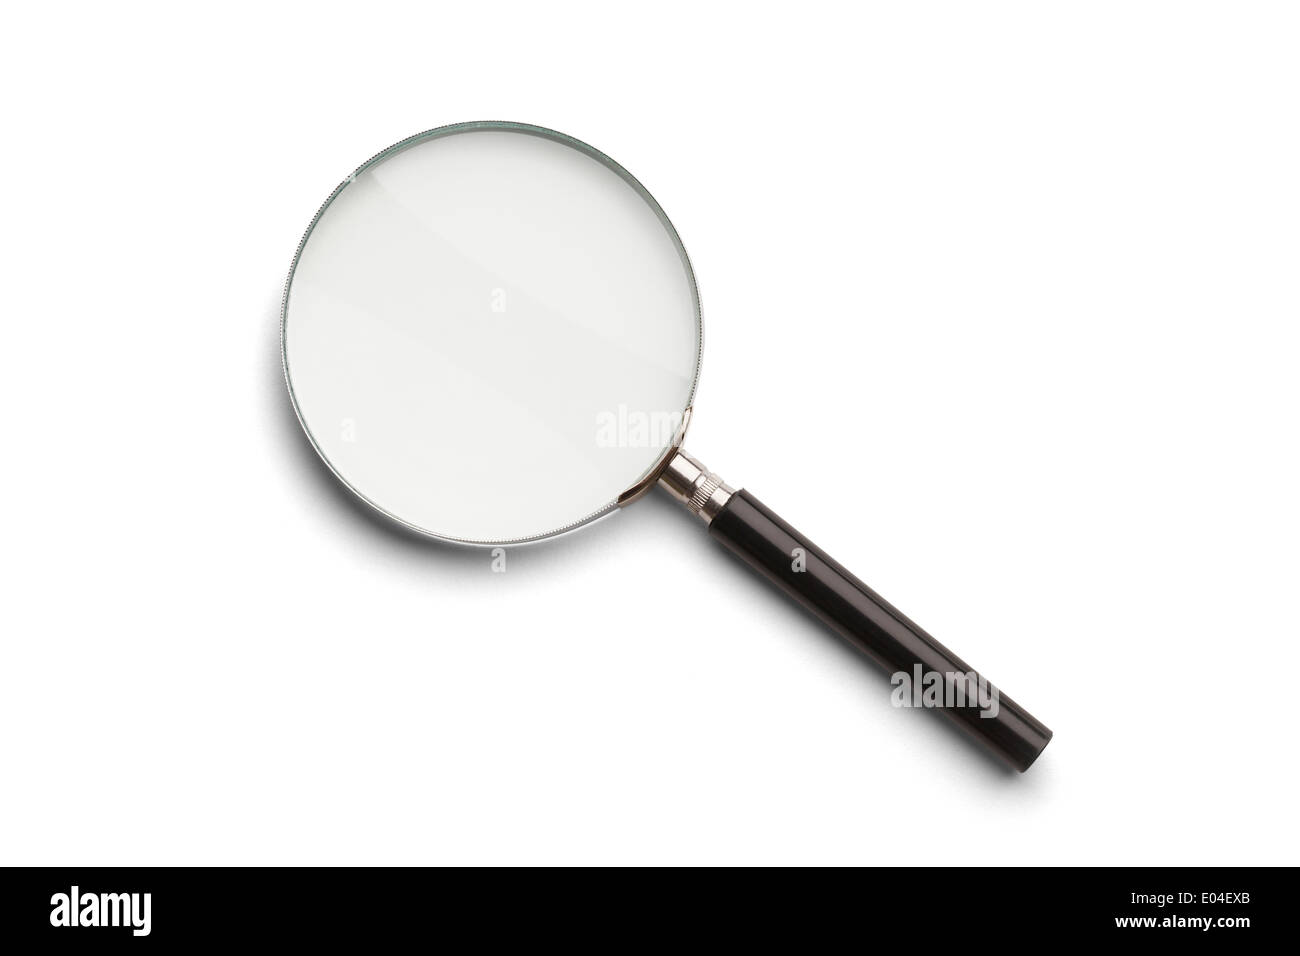 Black and Silver Magnifying Glass Isolated on a White Background. - Stock Image